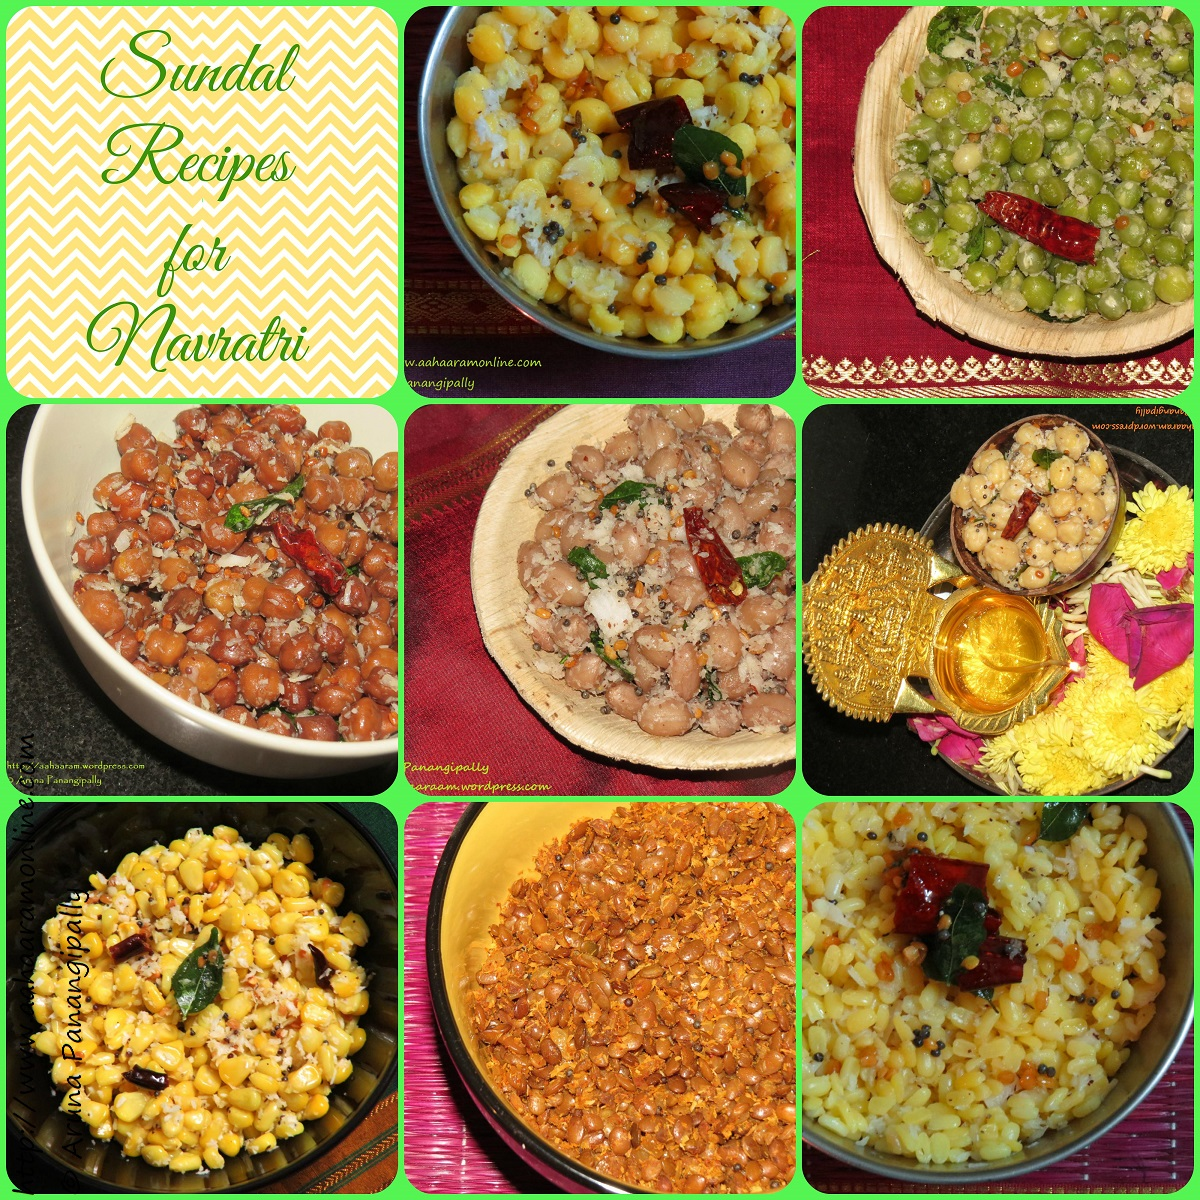 Sundal Recipes for Navratri